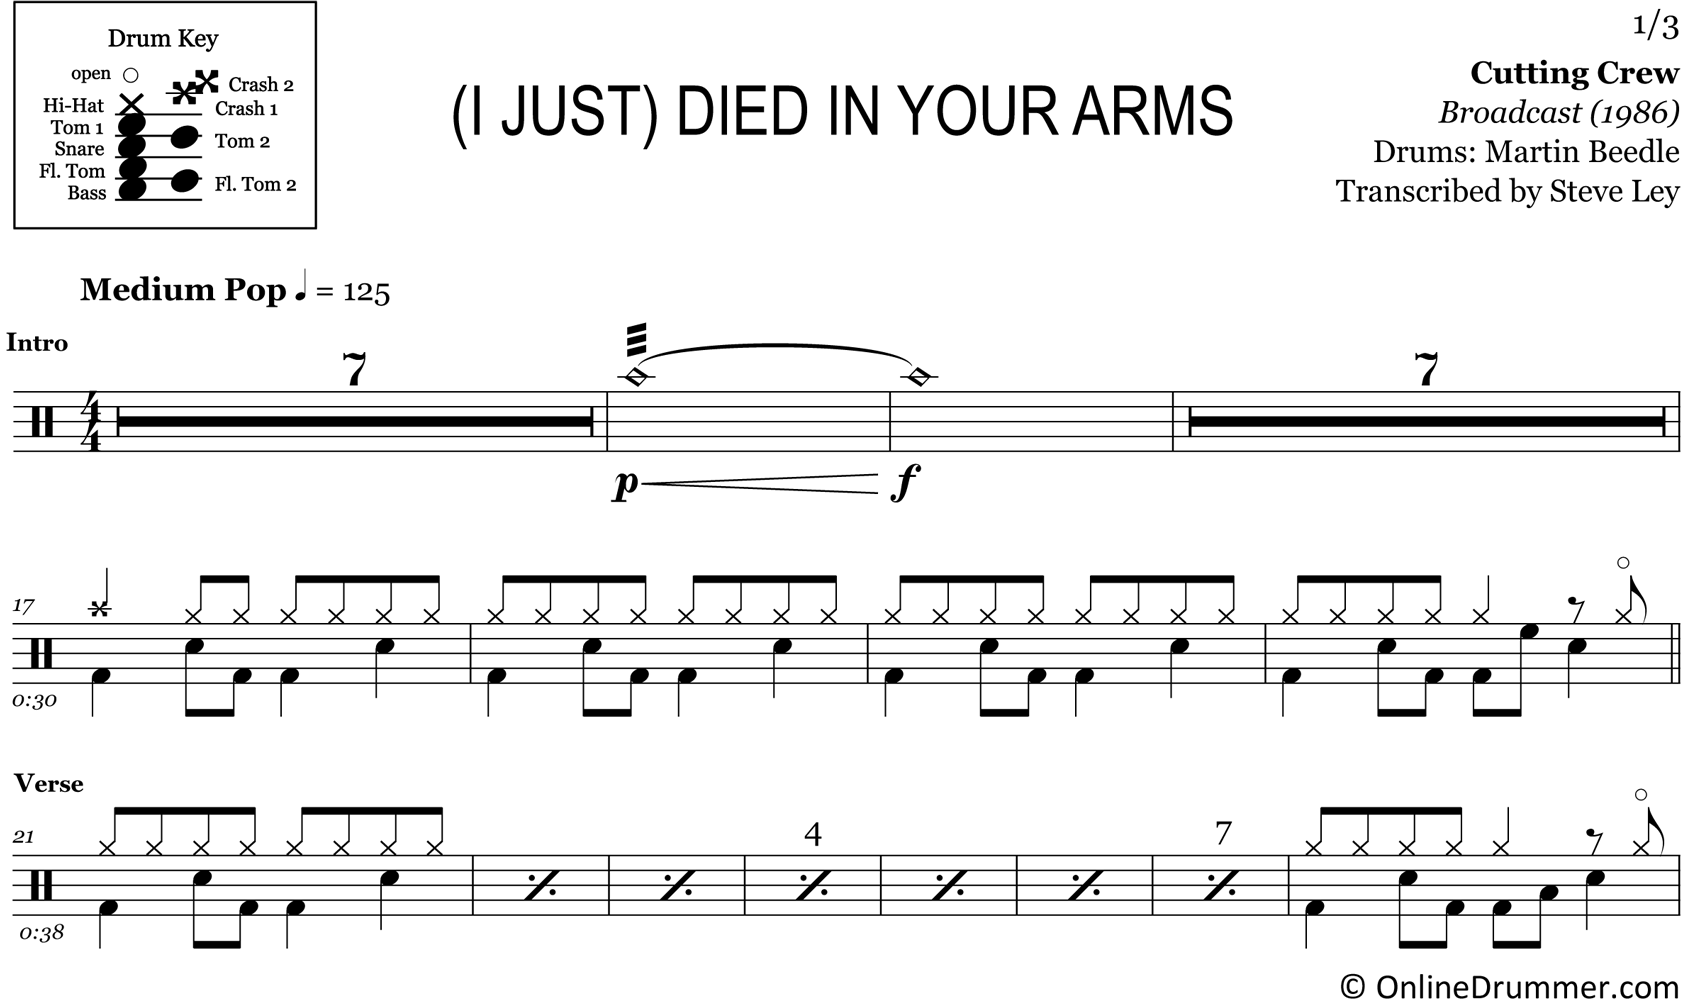 (I Just) Died In Your Arms - Cutting Crew - Drum Sheet Music